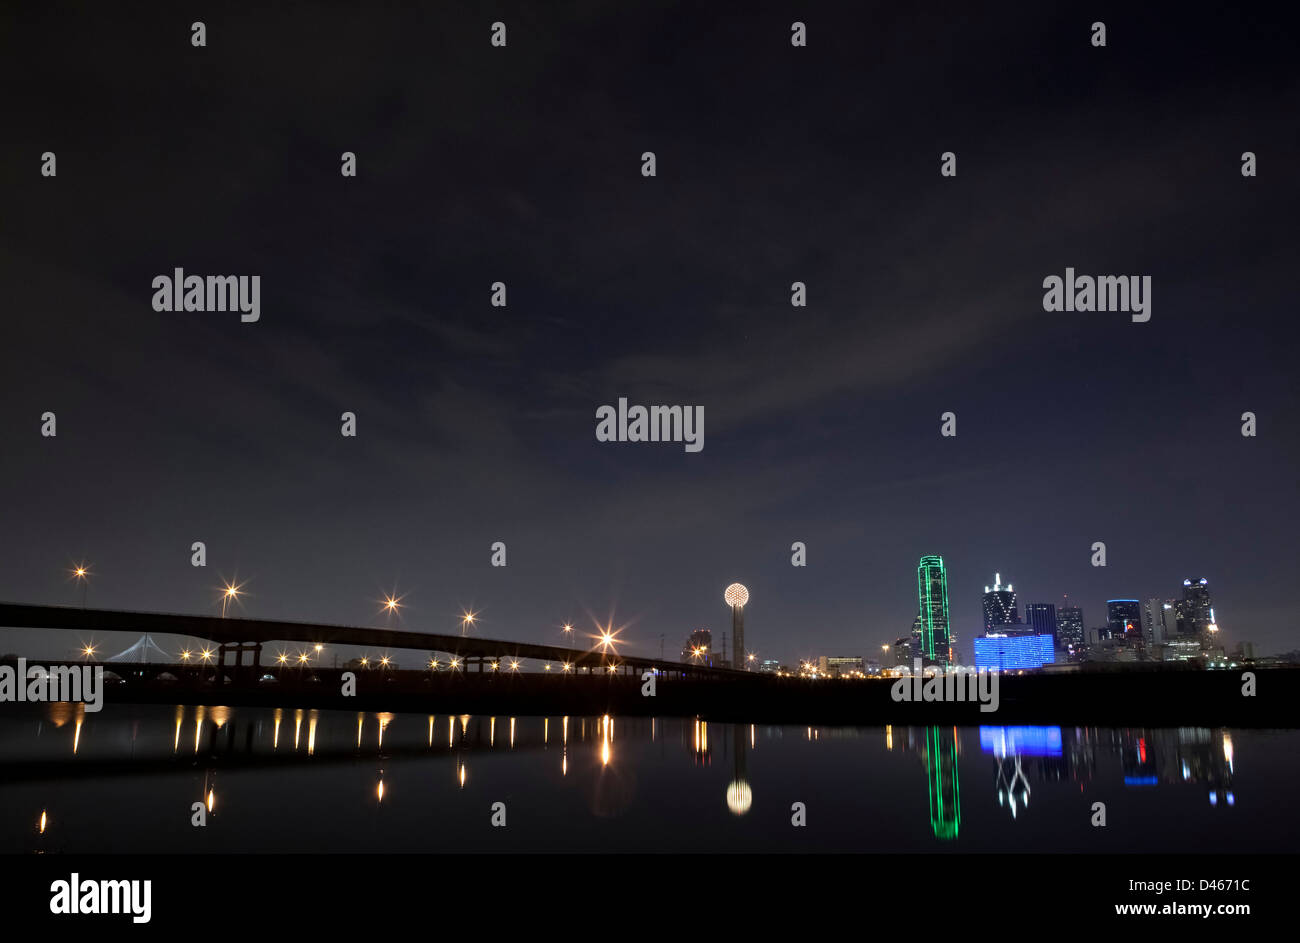 Dallas skyline at night with Margaret Hunt Hill Bridge, Dallas, Texas USA - Stock Image